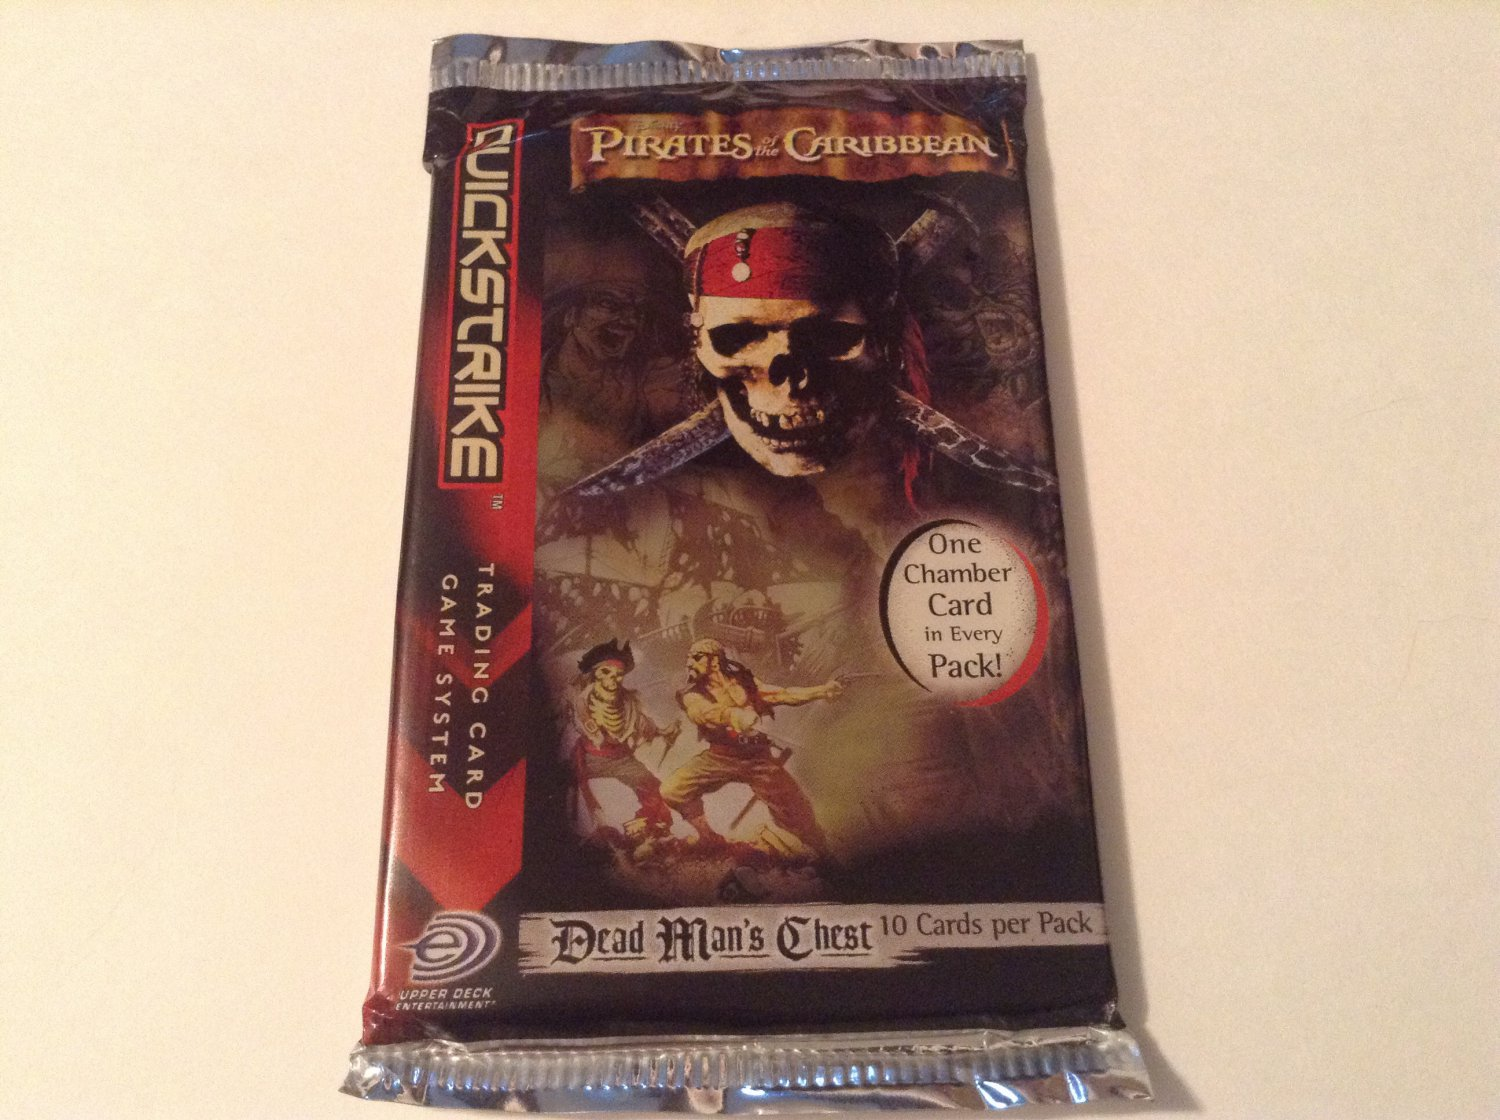 The Pirates of the Caribbean Trading Card Pack